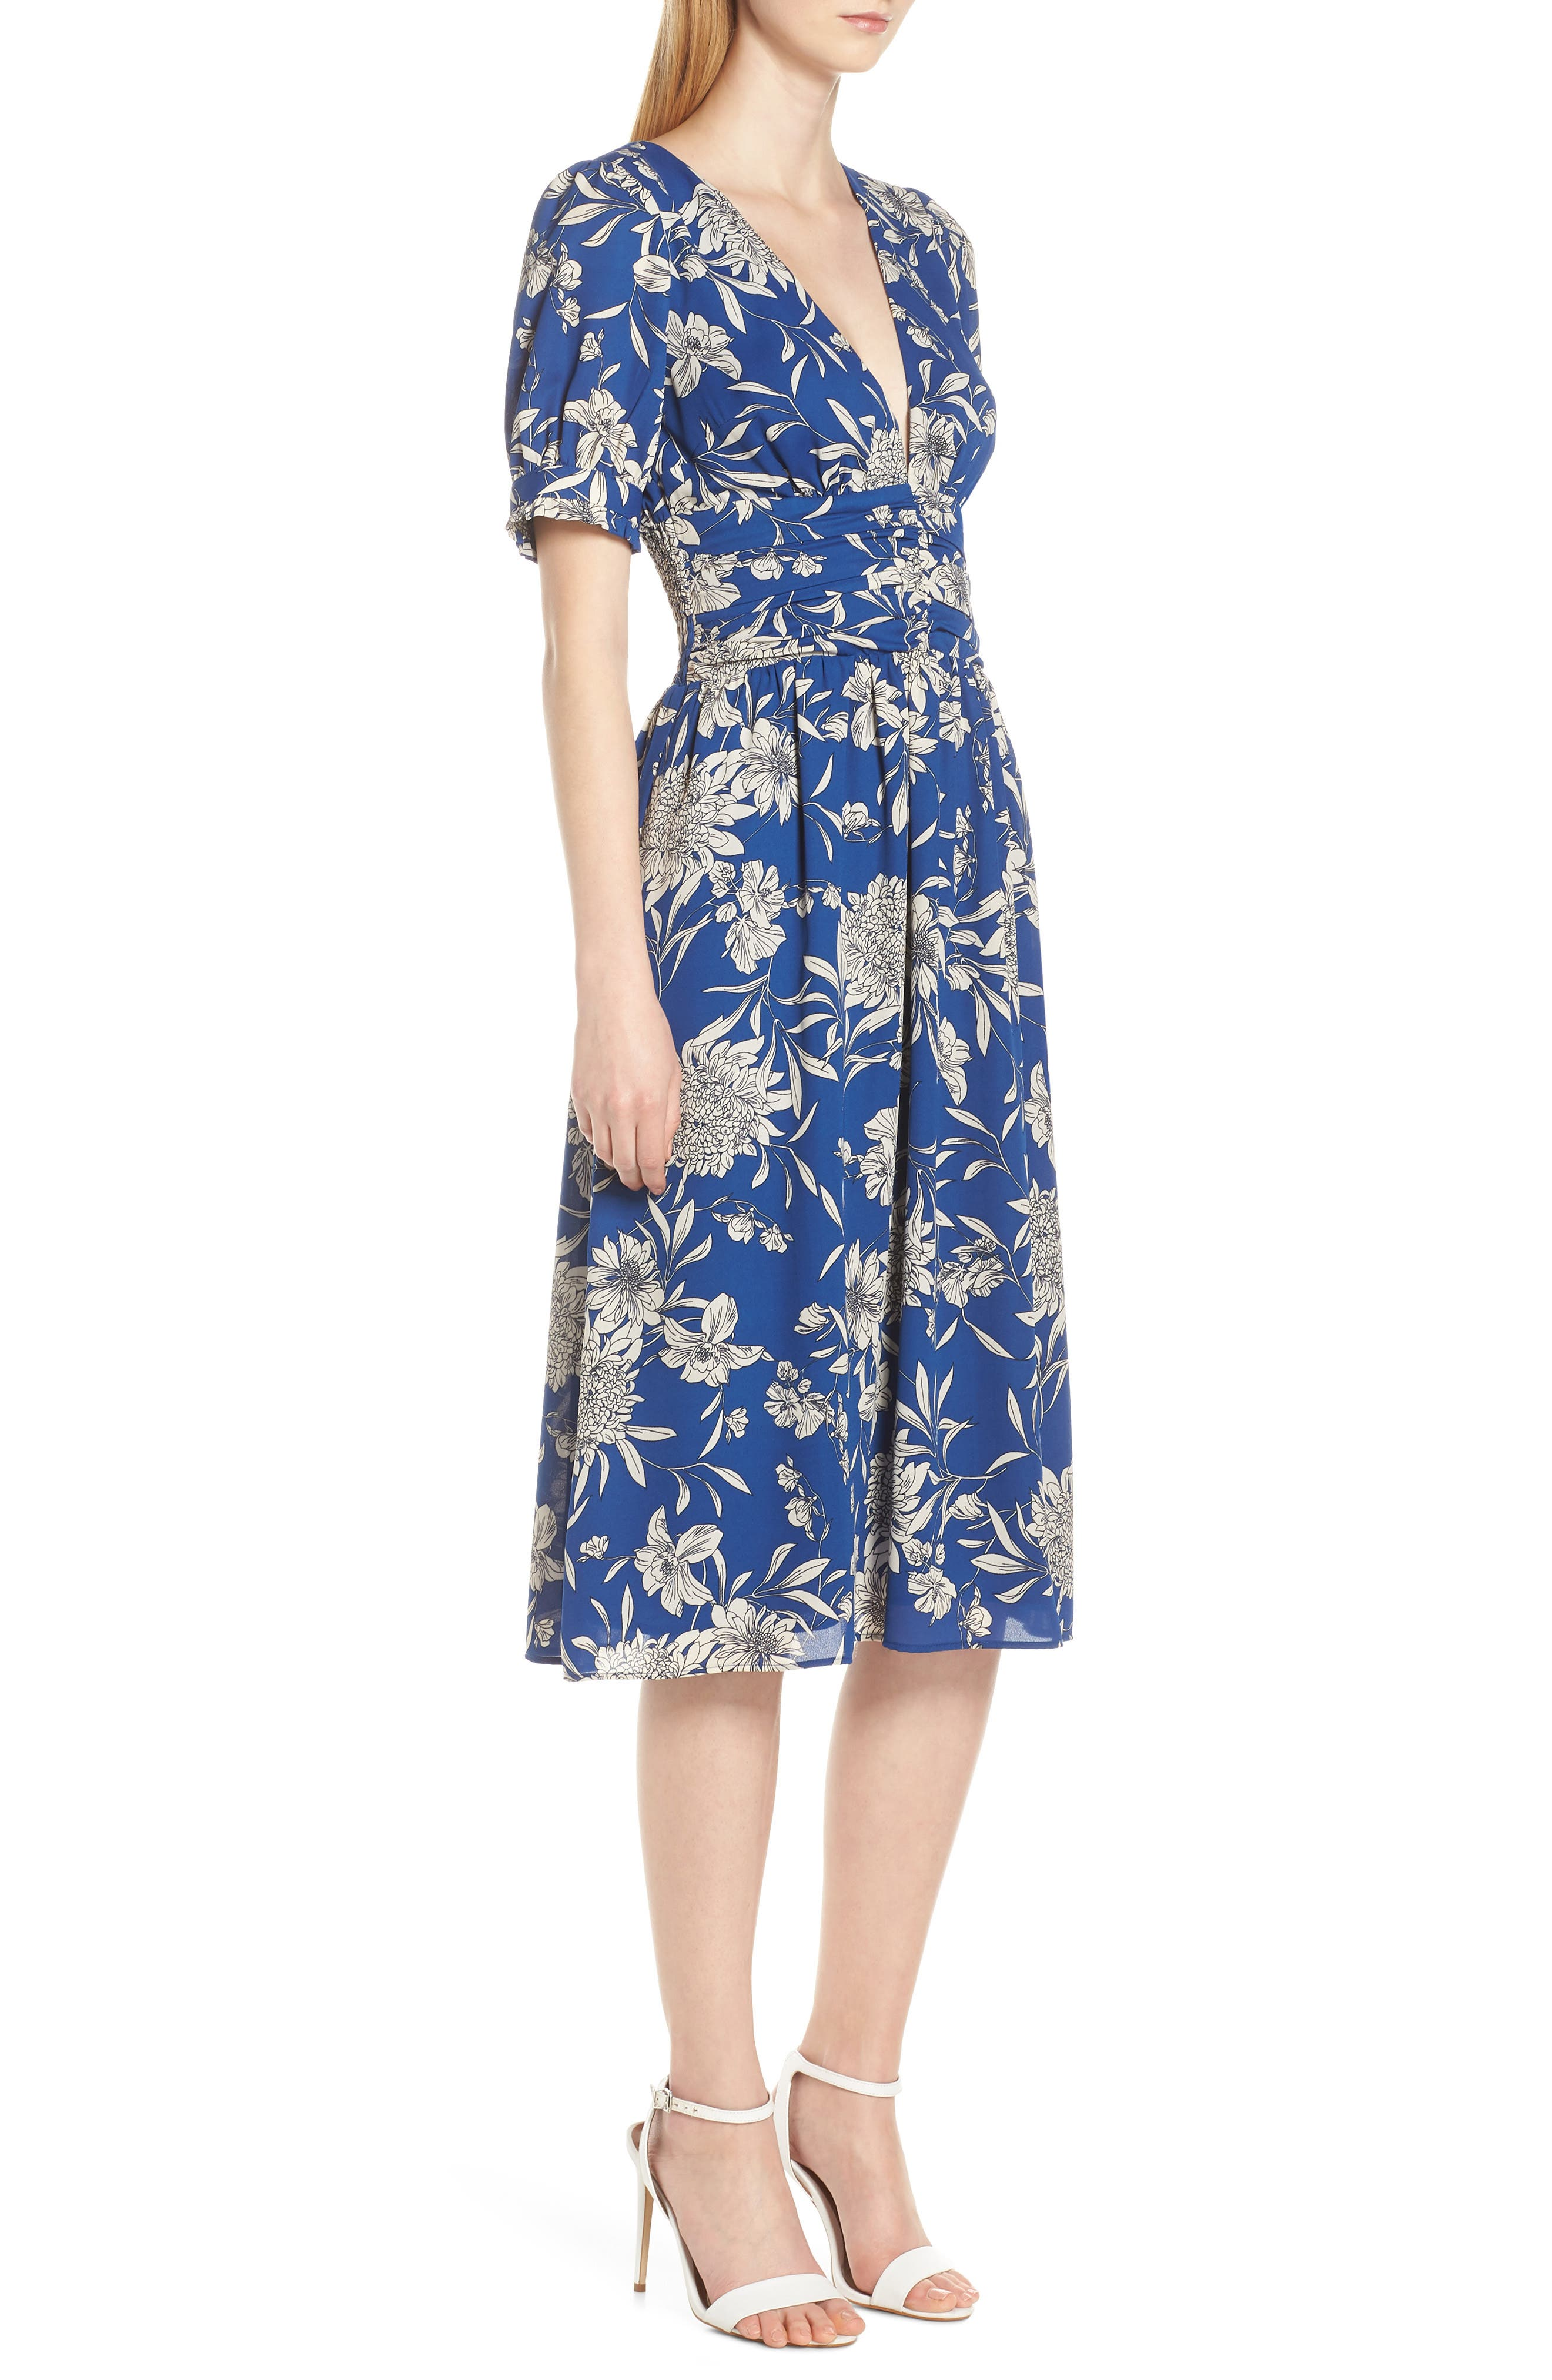 19 COOPER, Shirred Waist Midi Dress, Alternate thumbnail 4, color, BLUE/ WHITE